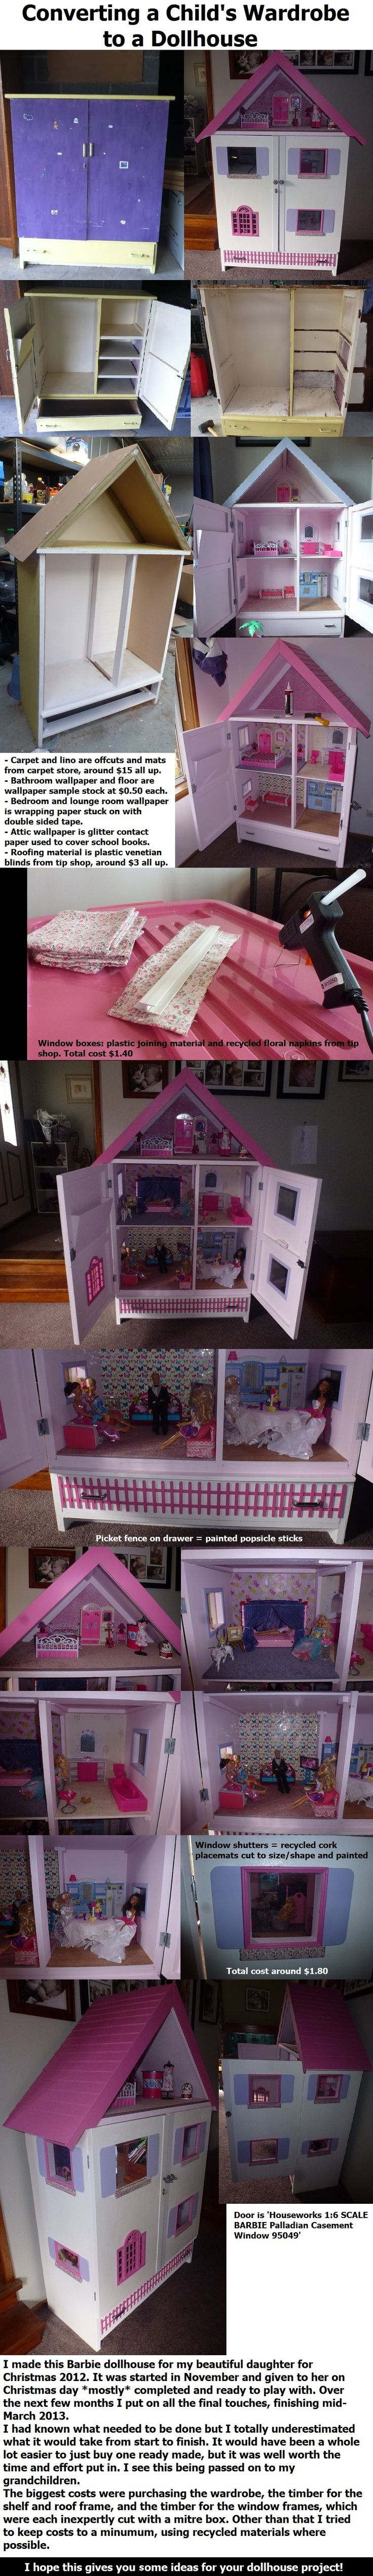 converting a child s wardrobe armoire to a barbie dollhouse